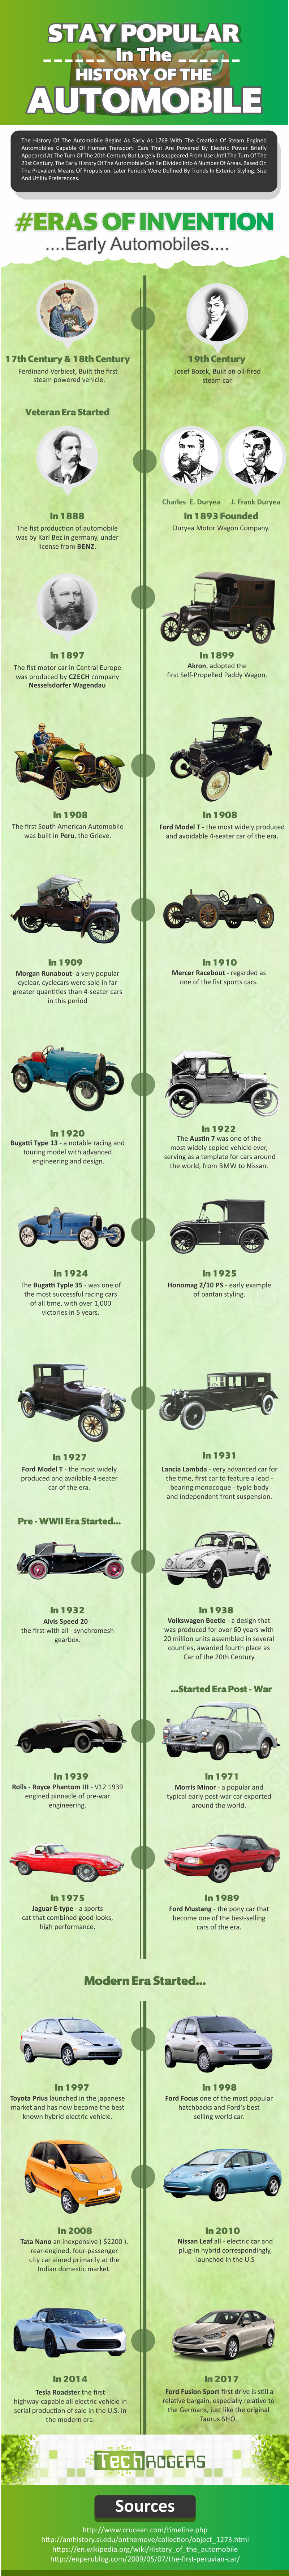 28 Milestones In History of Automobile [Infographic]